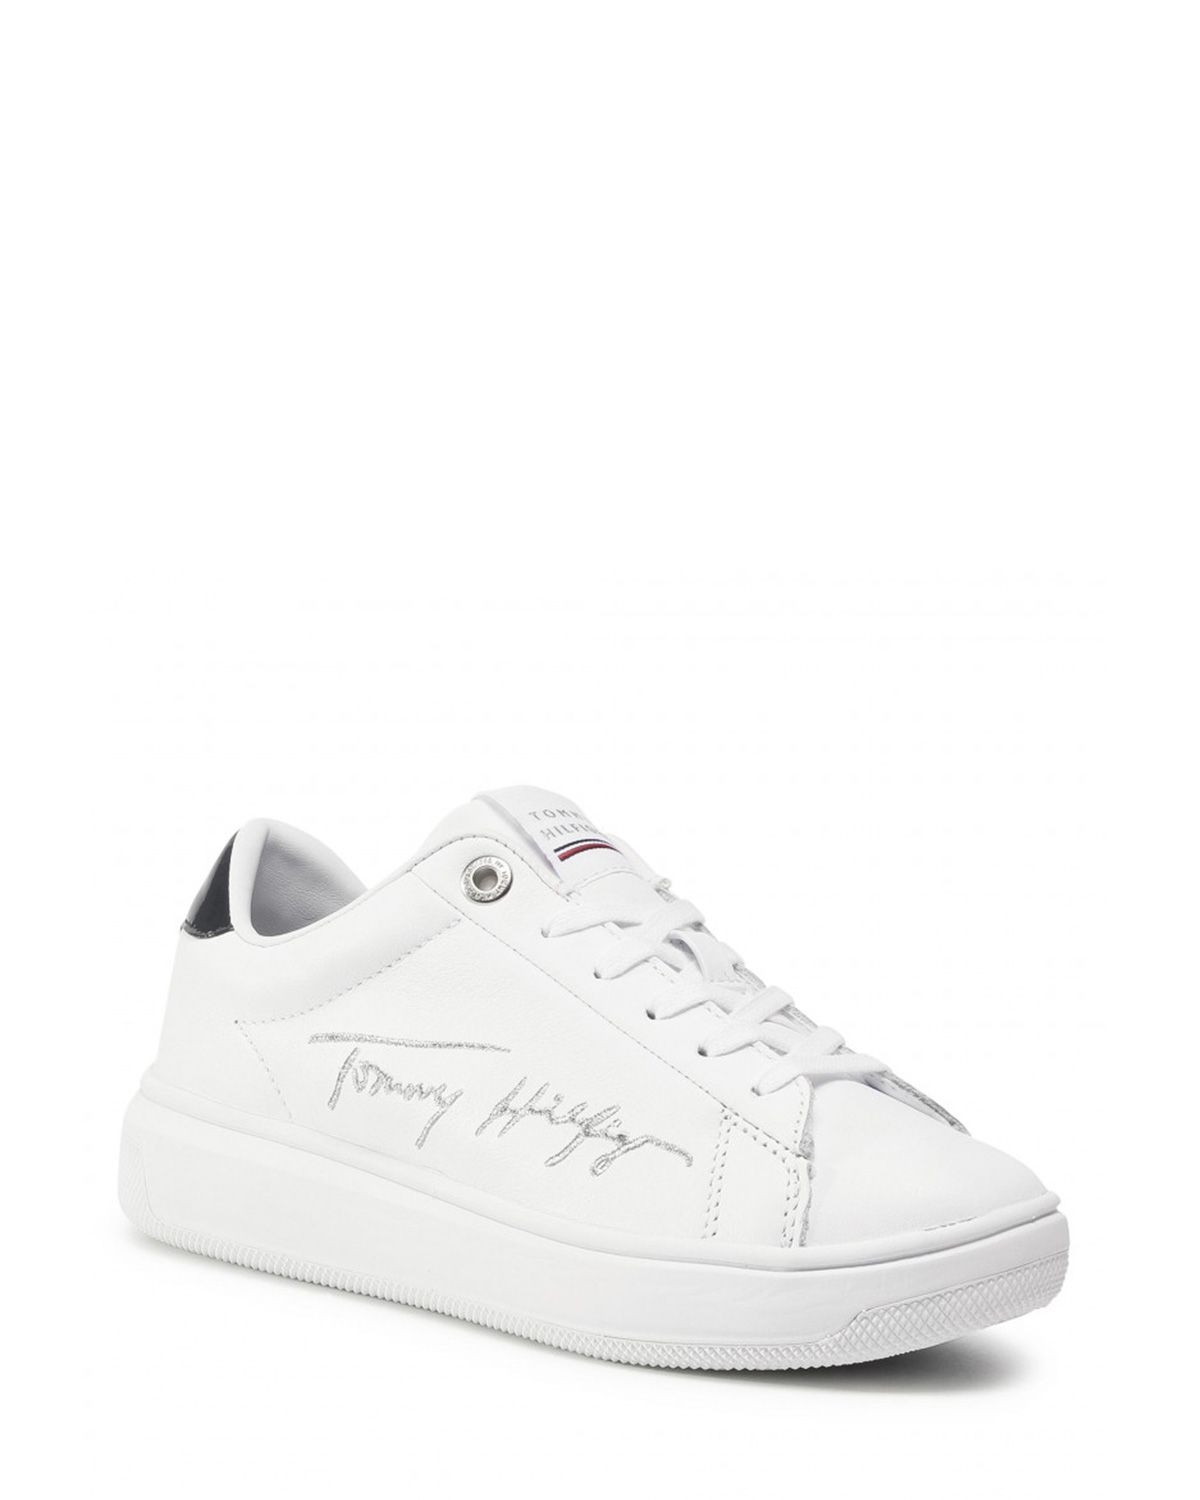 Tommy Hilfiger Signature Tommy Leather Cupsole Sneakers FW0FW05219 White